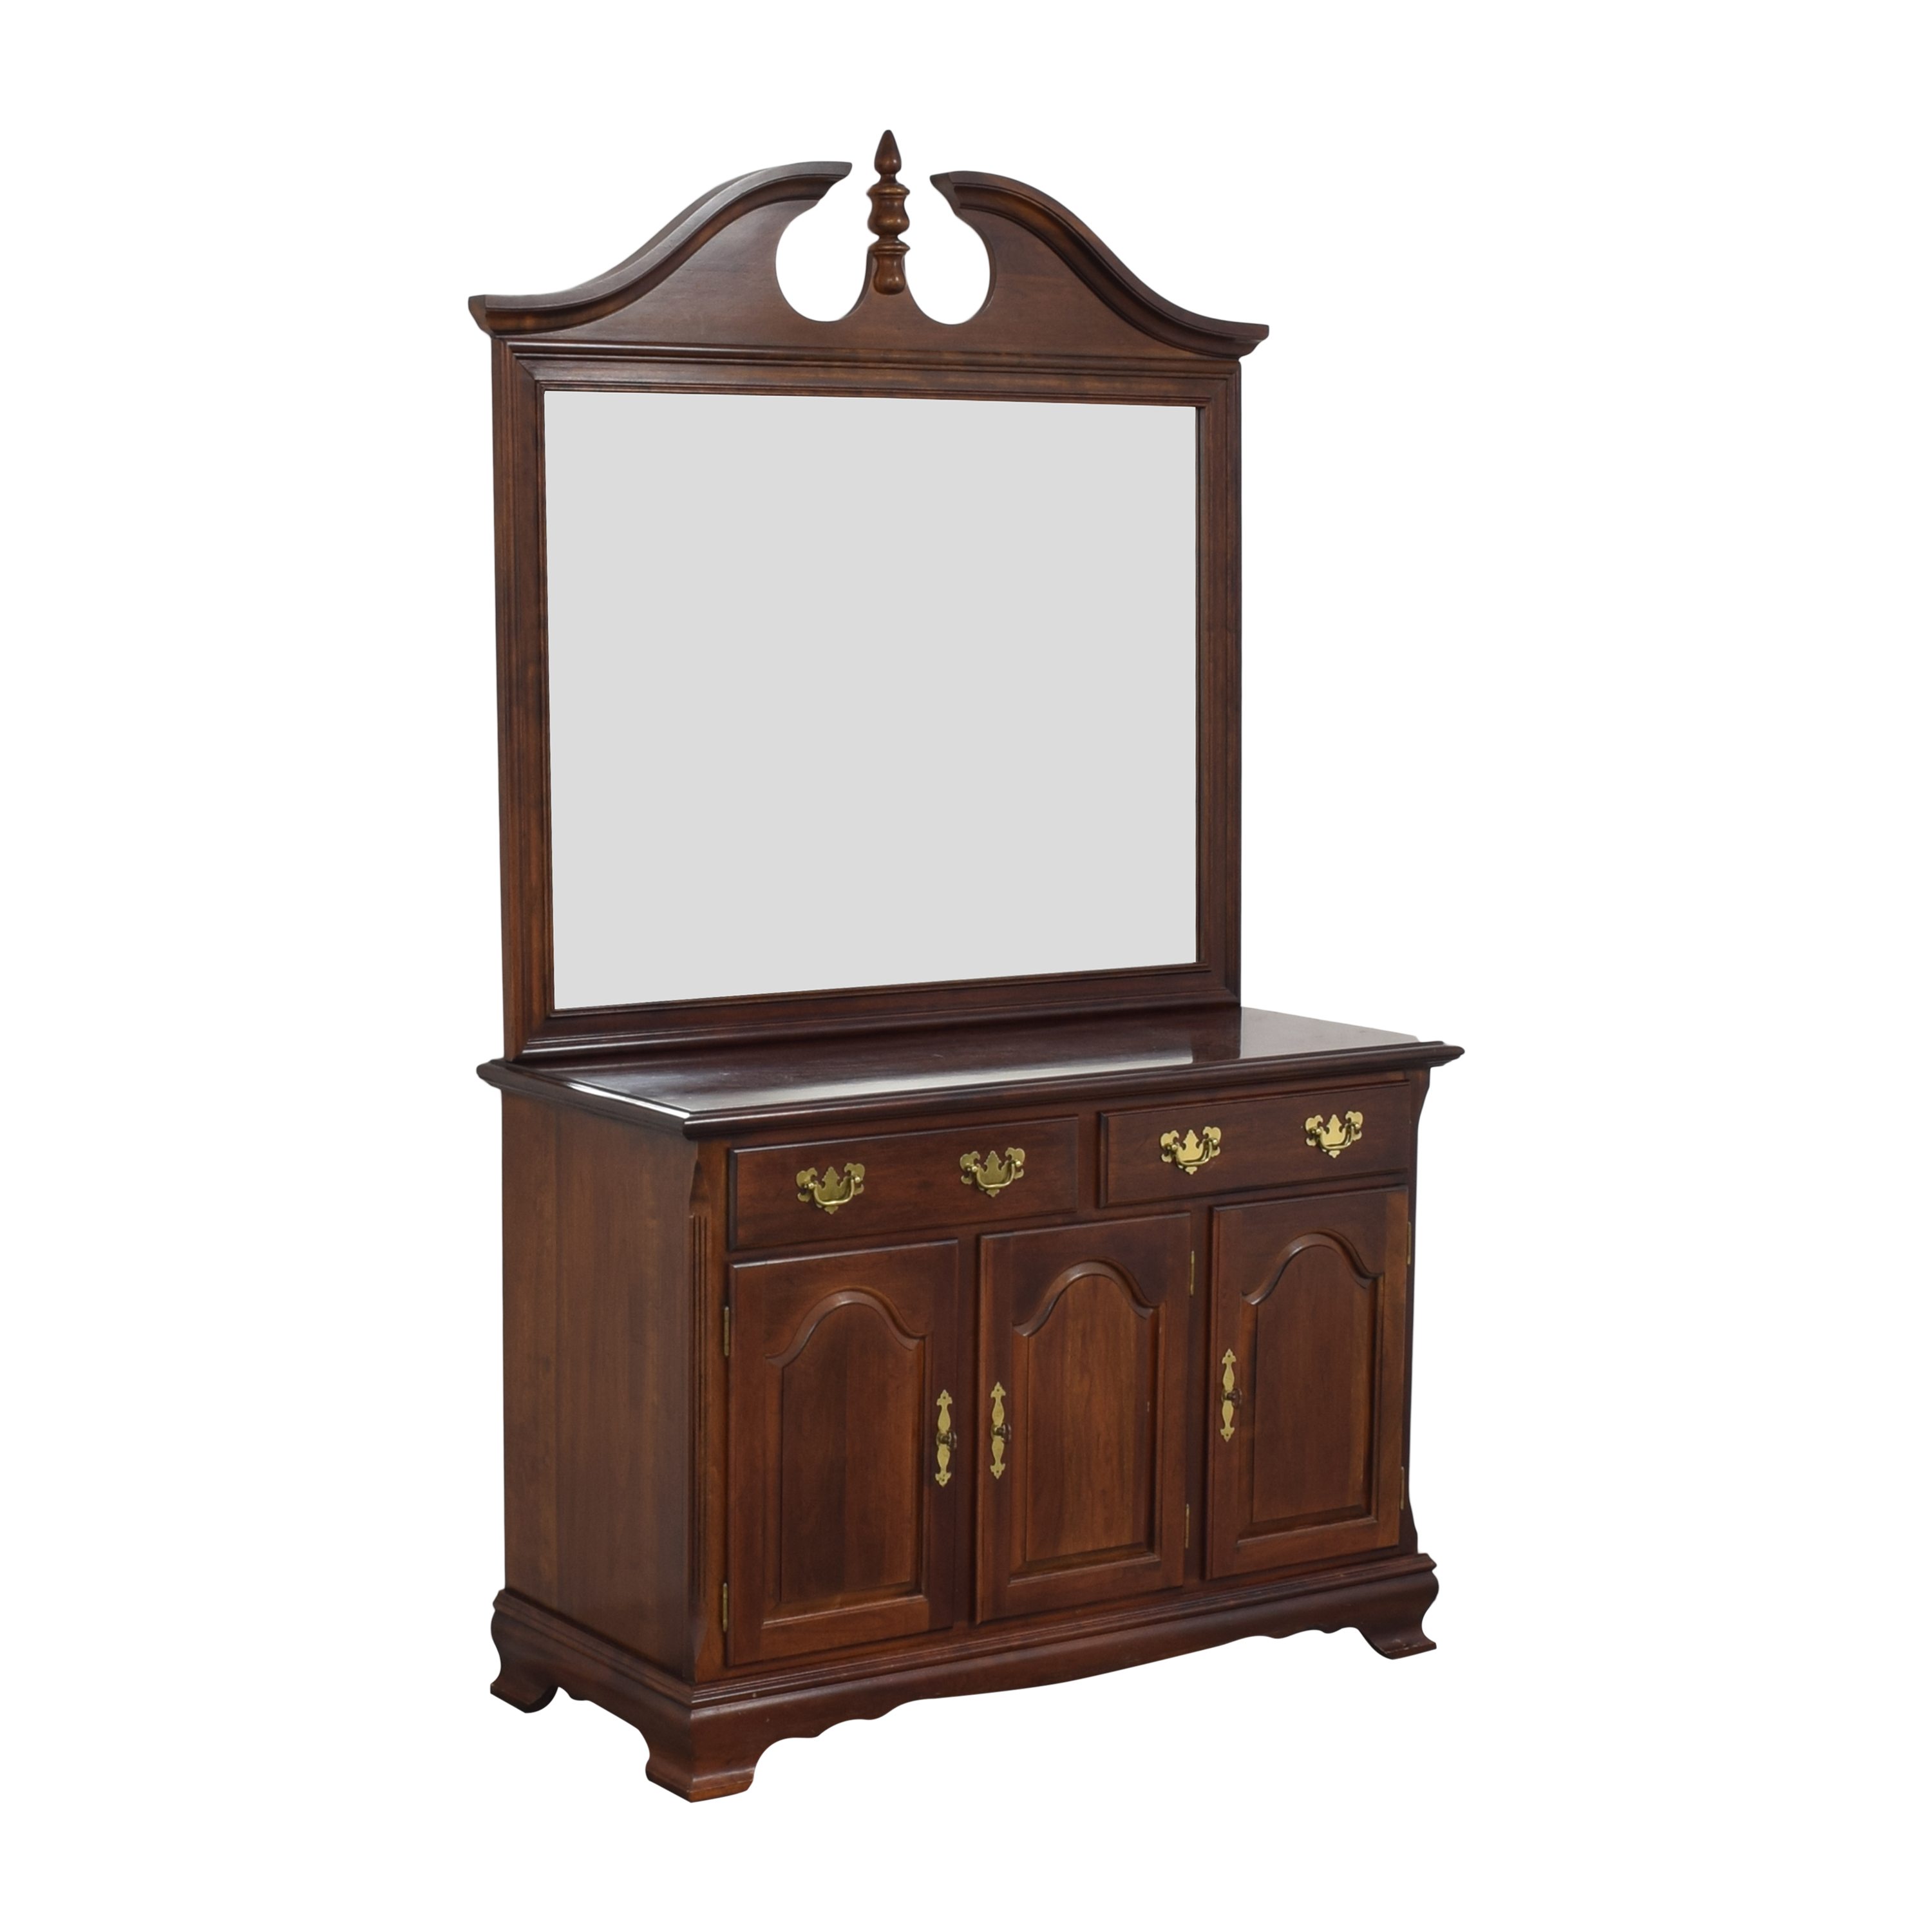 Drexel Heritage Drexel Heritage Chippendale-Style Buffet with Mirror pa